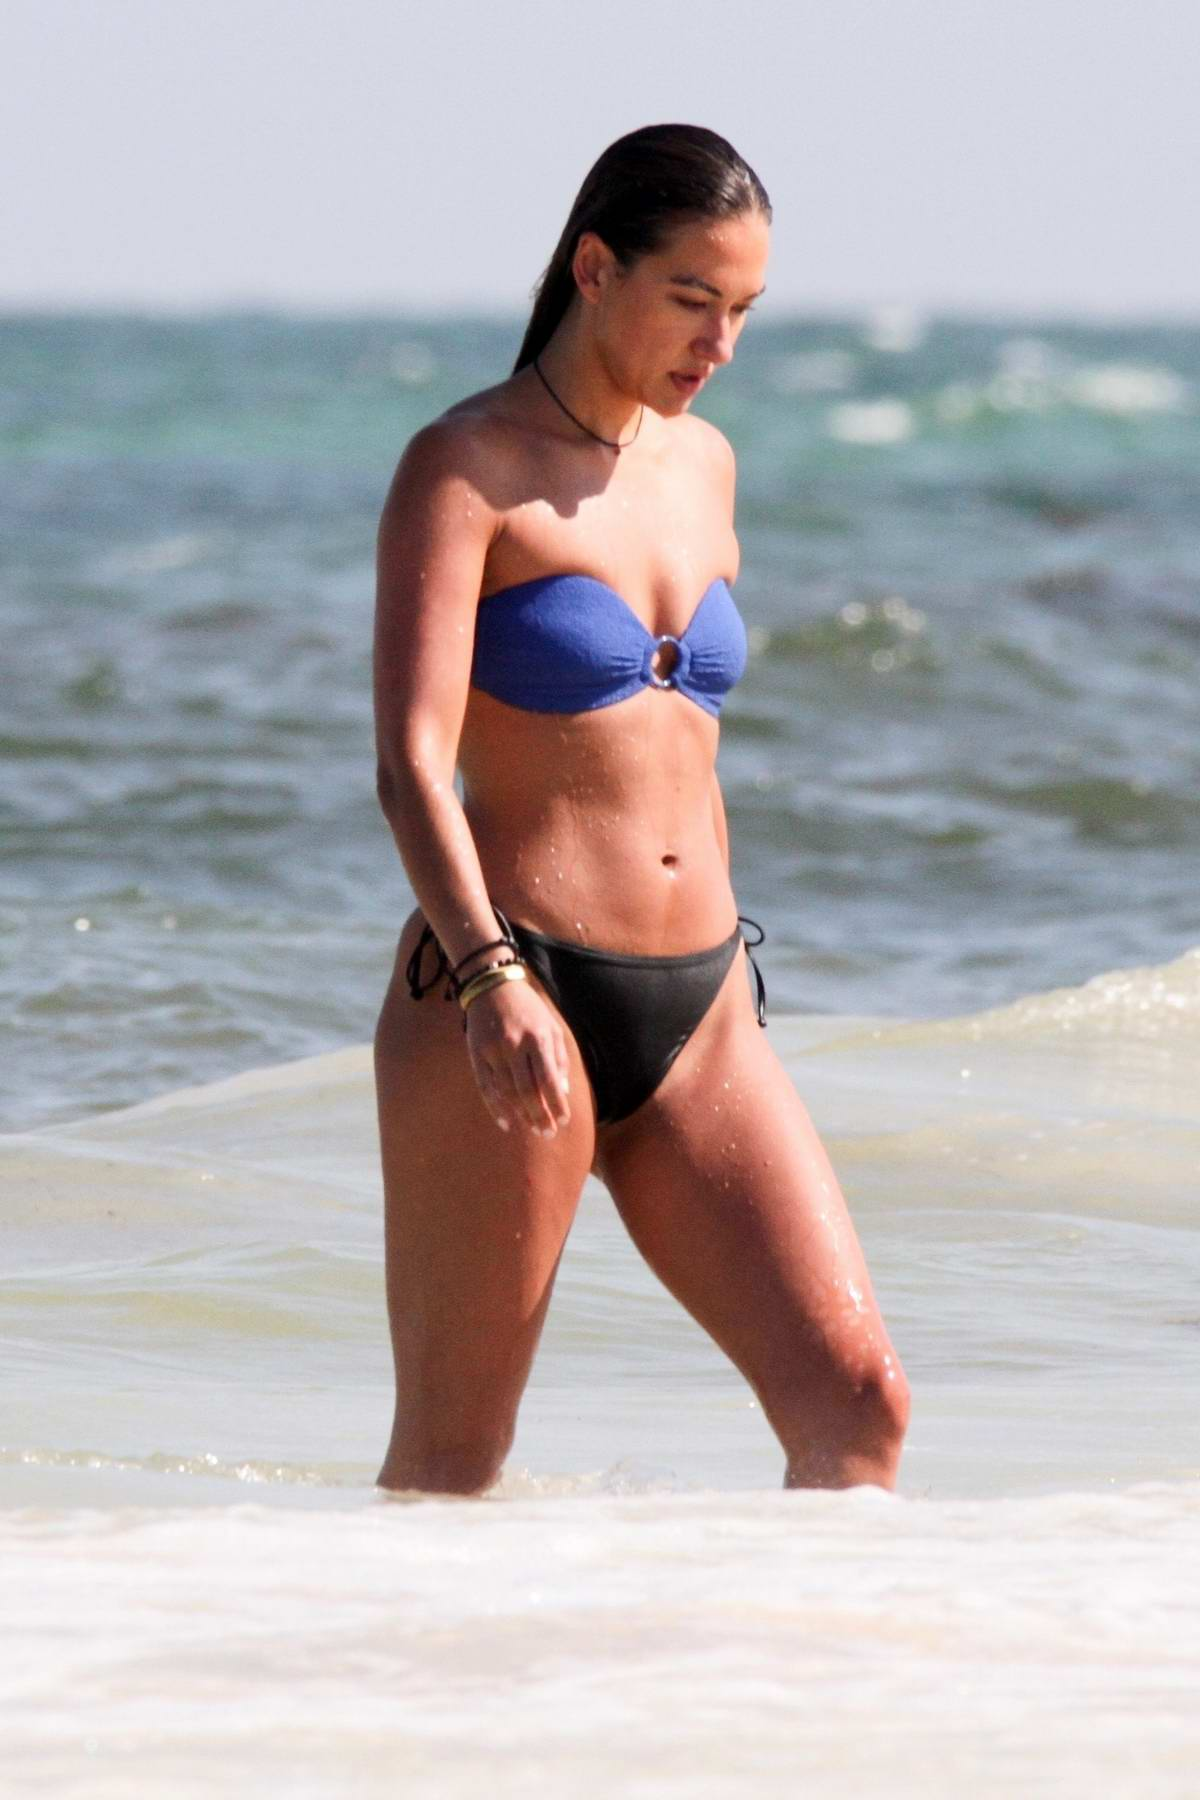 Tasya Teles shows off her beach body in a blue and black bikini as she goes for a swim while on vacation in Tulum, Mexico